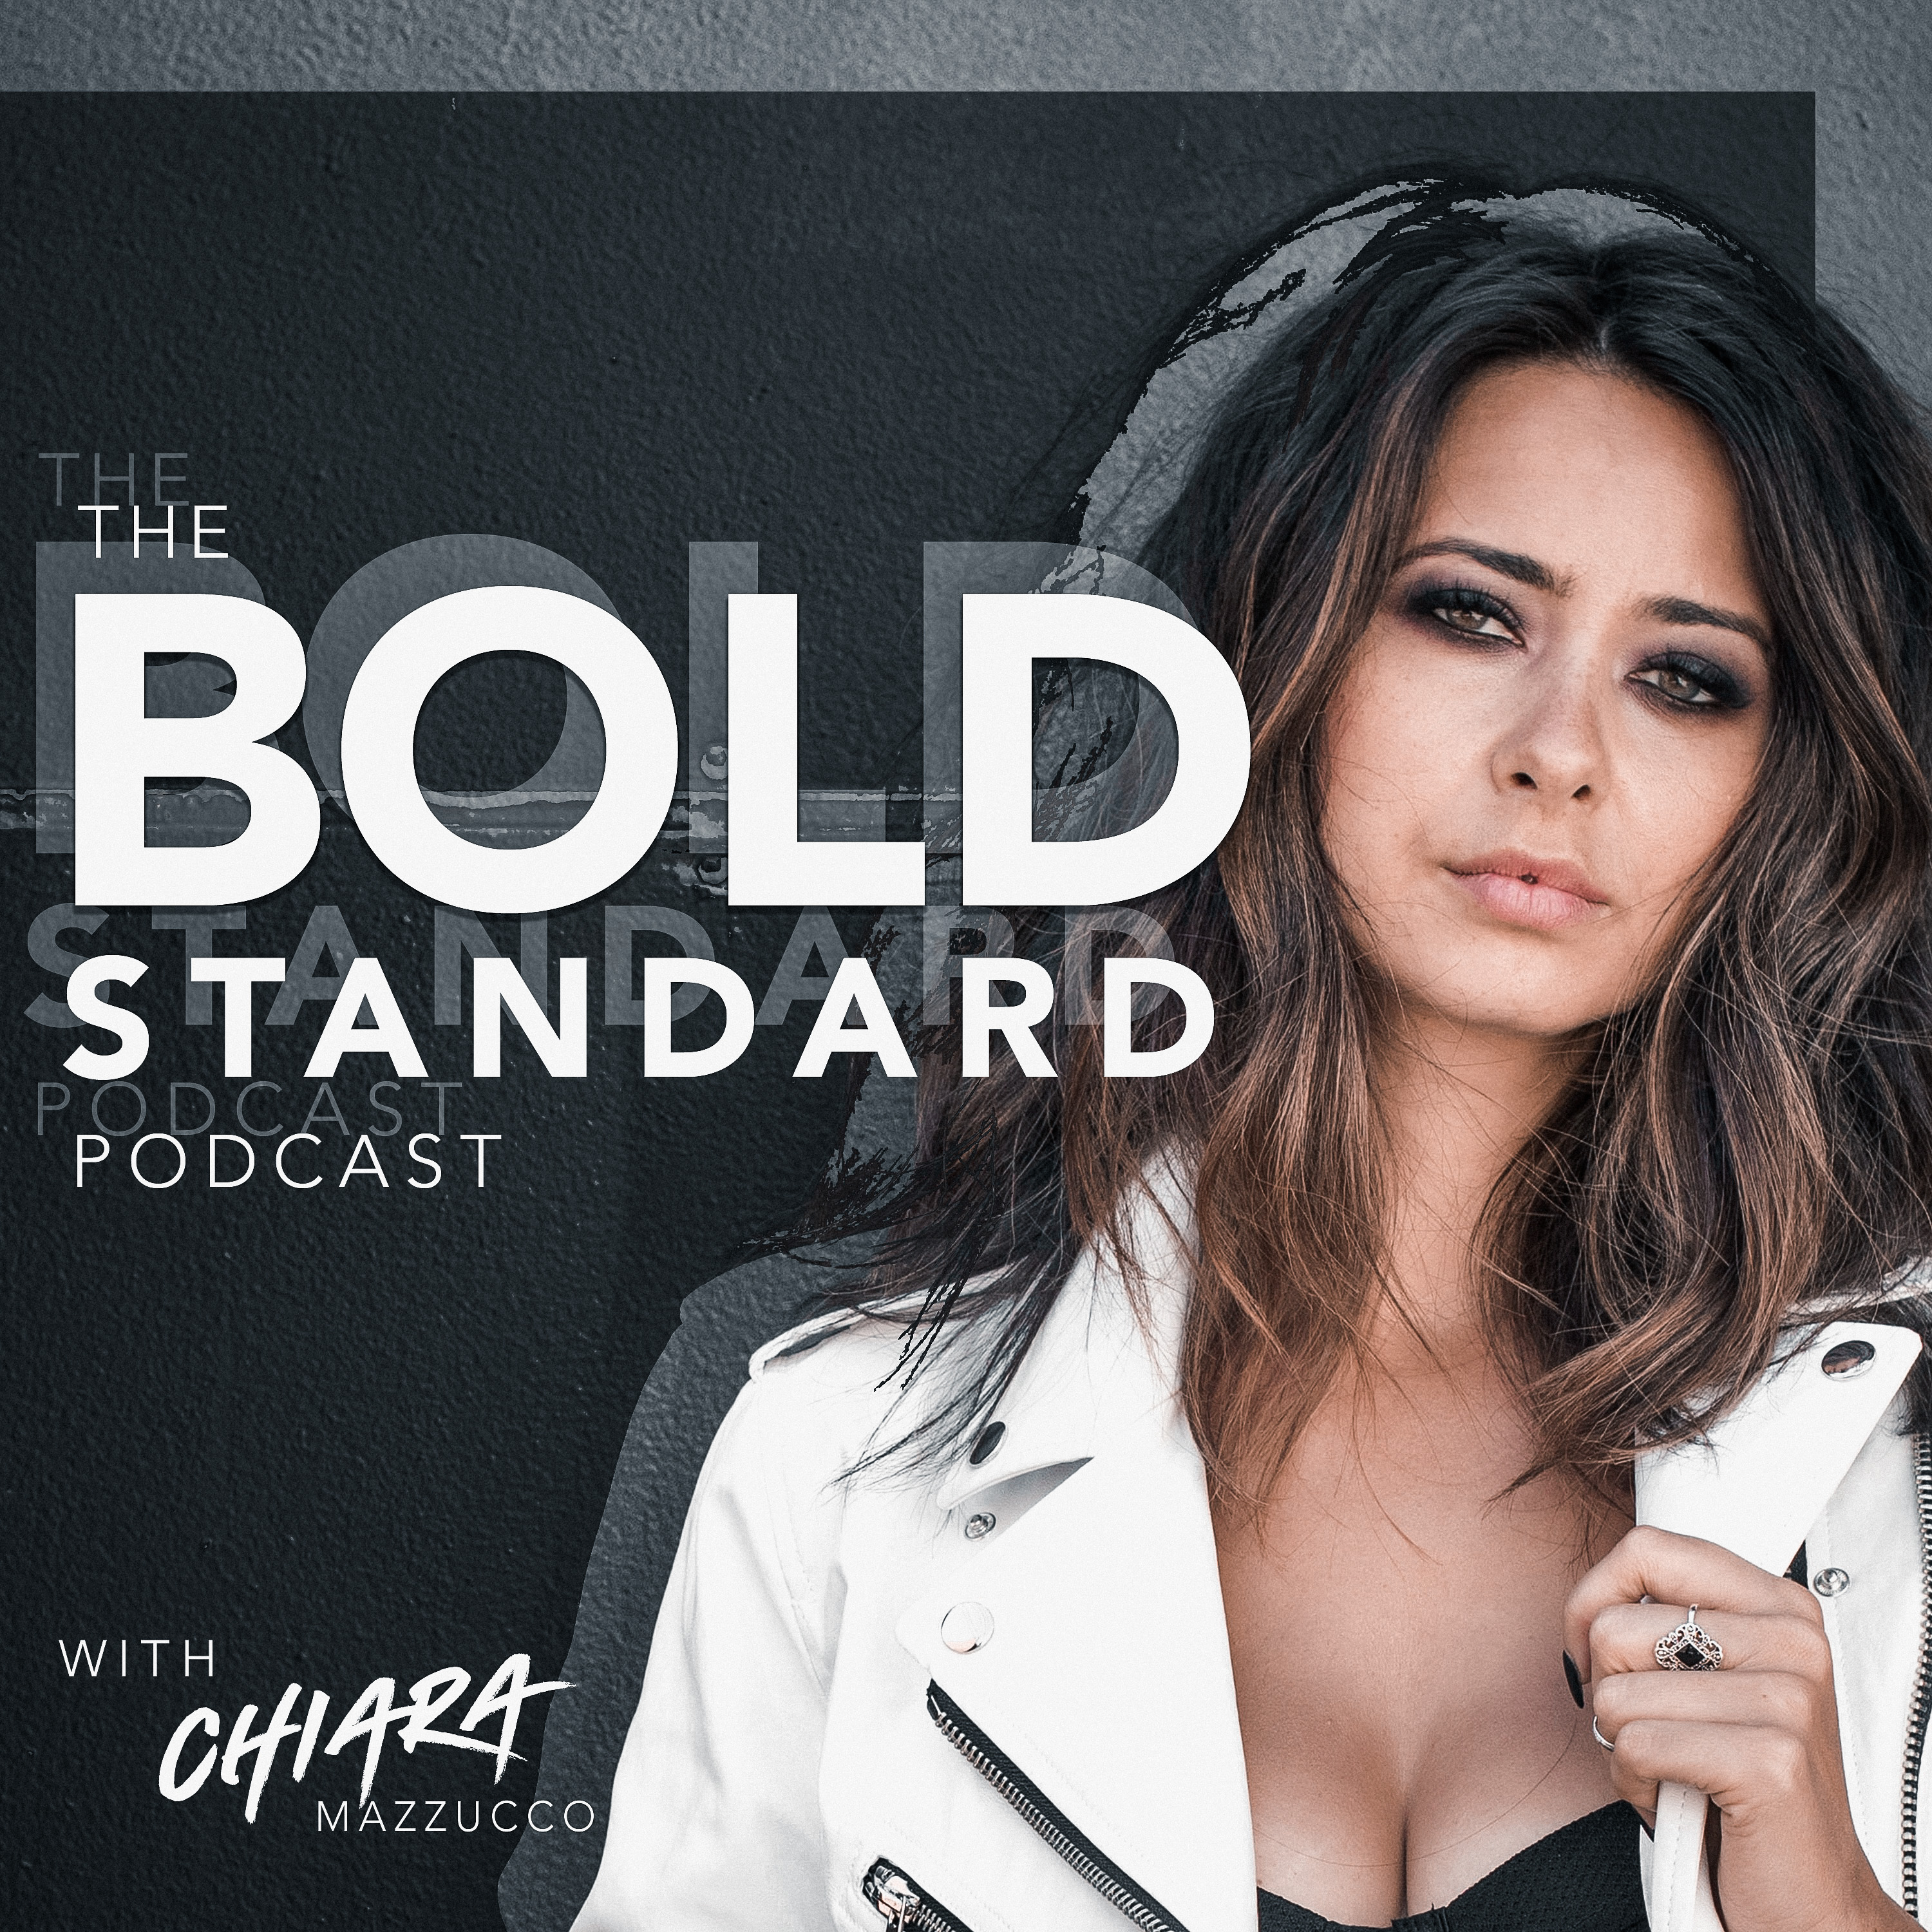 The Bold Standard